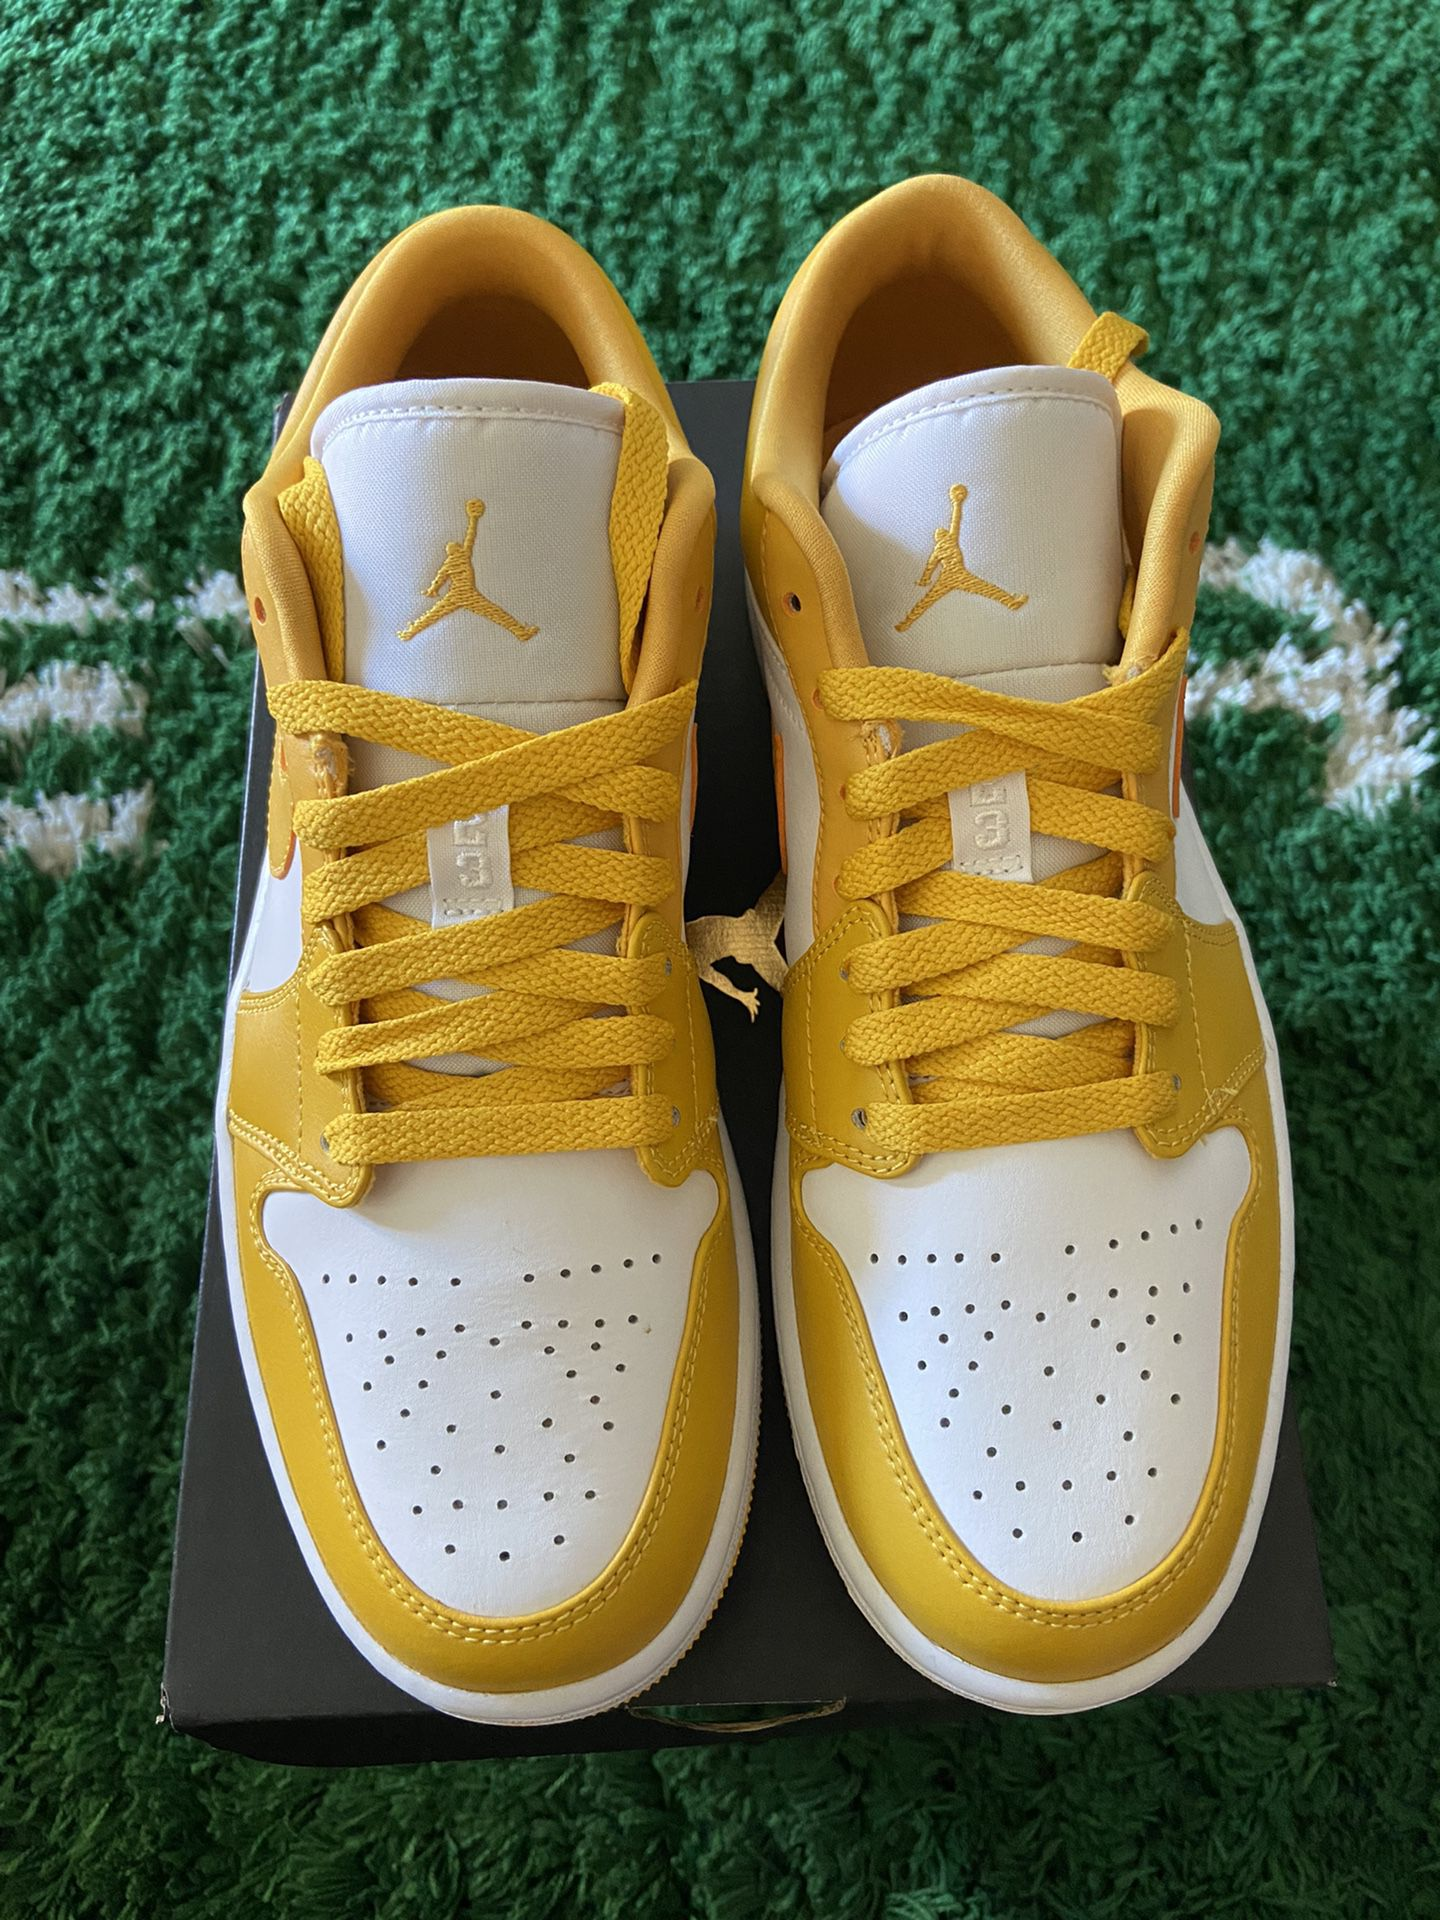 New DS Size 8.5 And 9.5 Jordan 1 Pollen Low